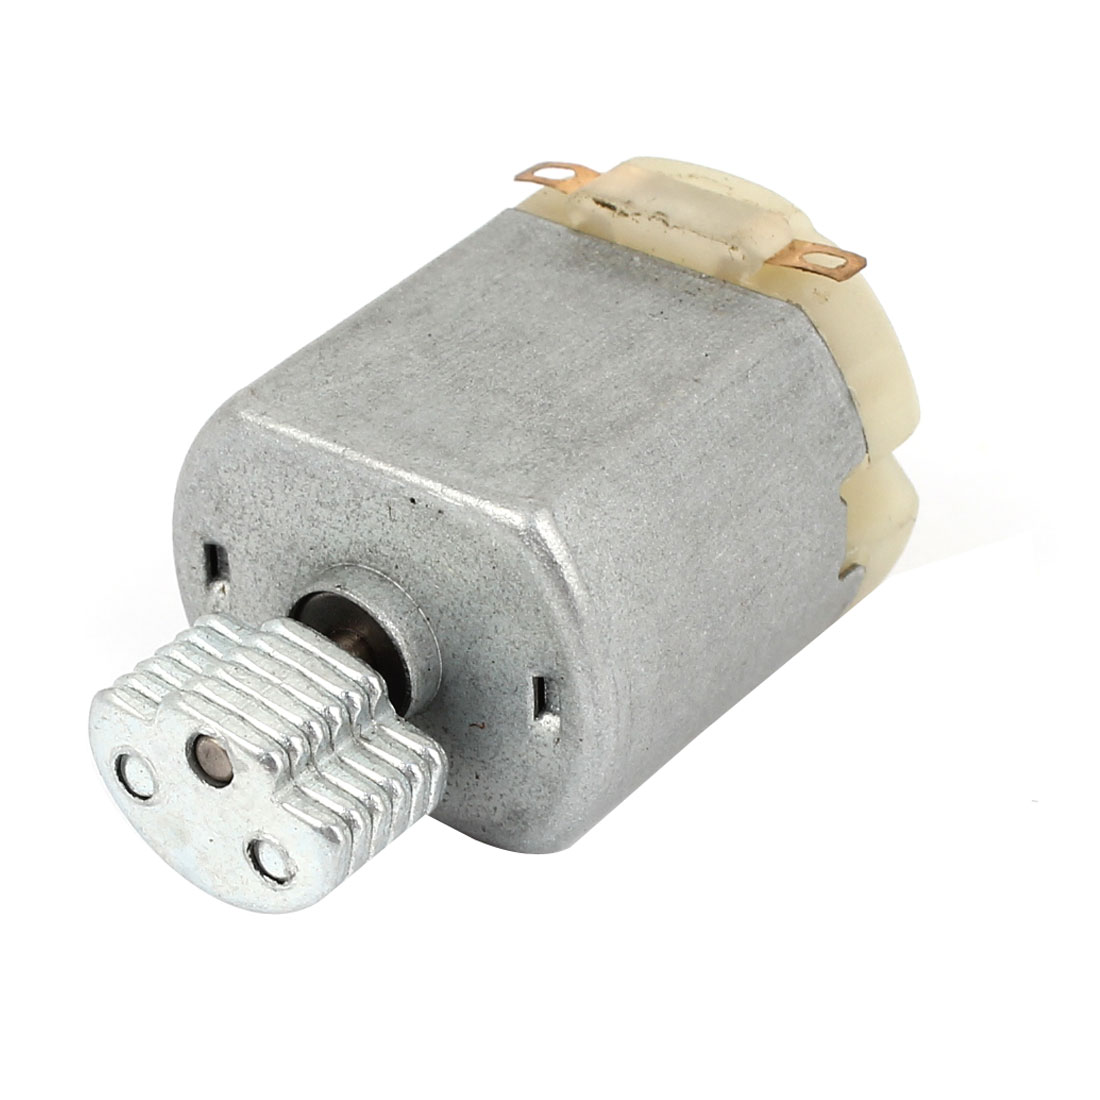 DC 1.5V-3V 18000RPM Rotary Speed Solder 2Terminal Electric Mini Motor